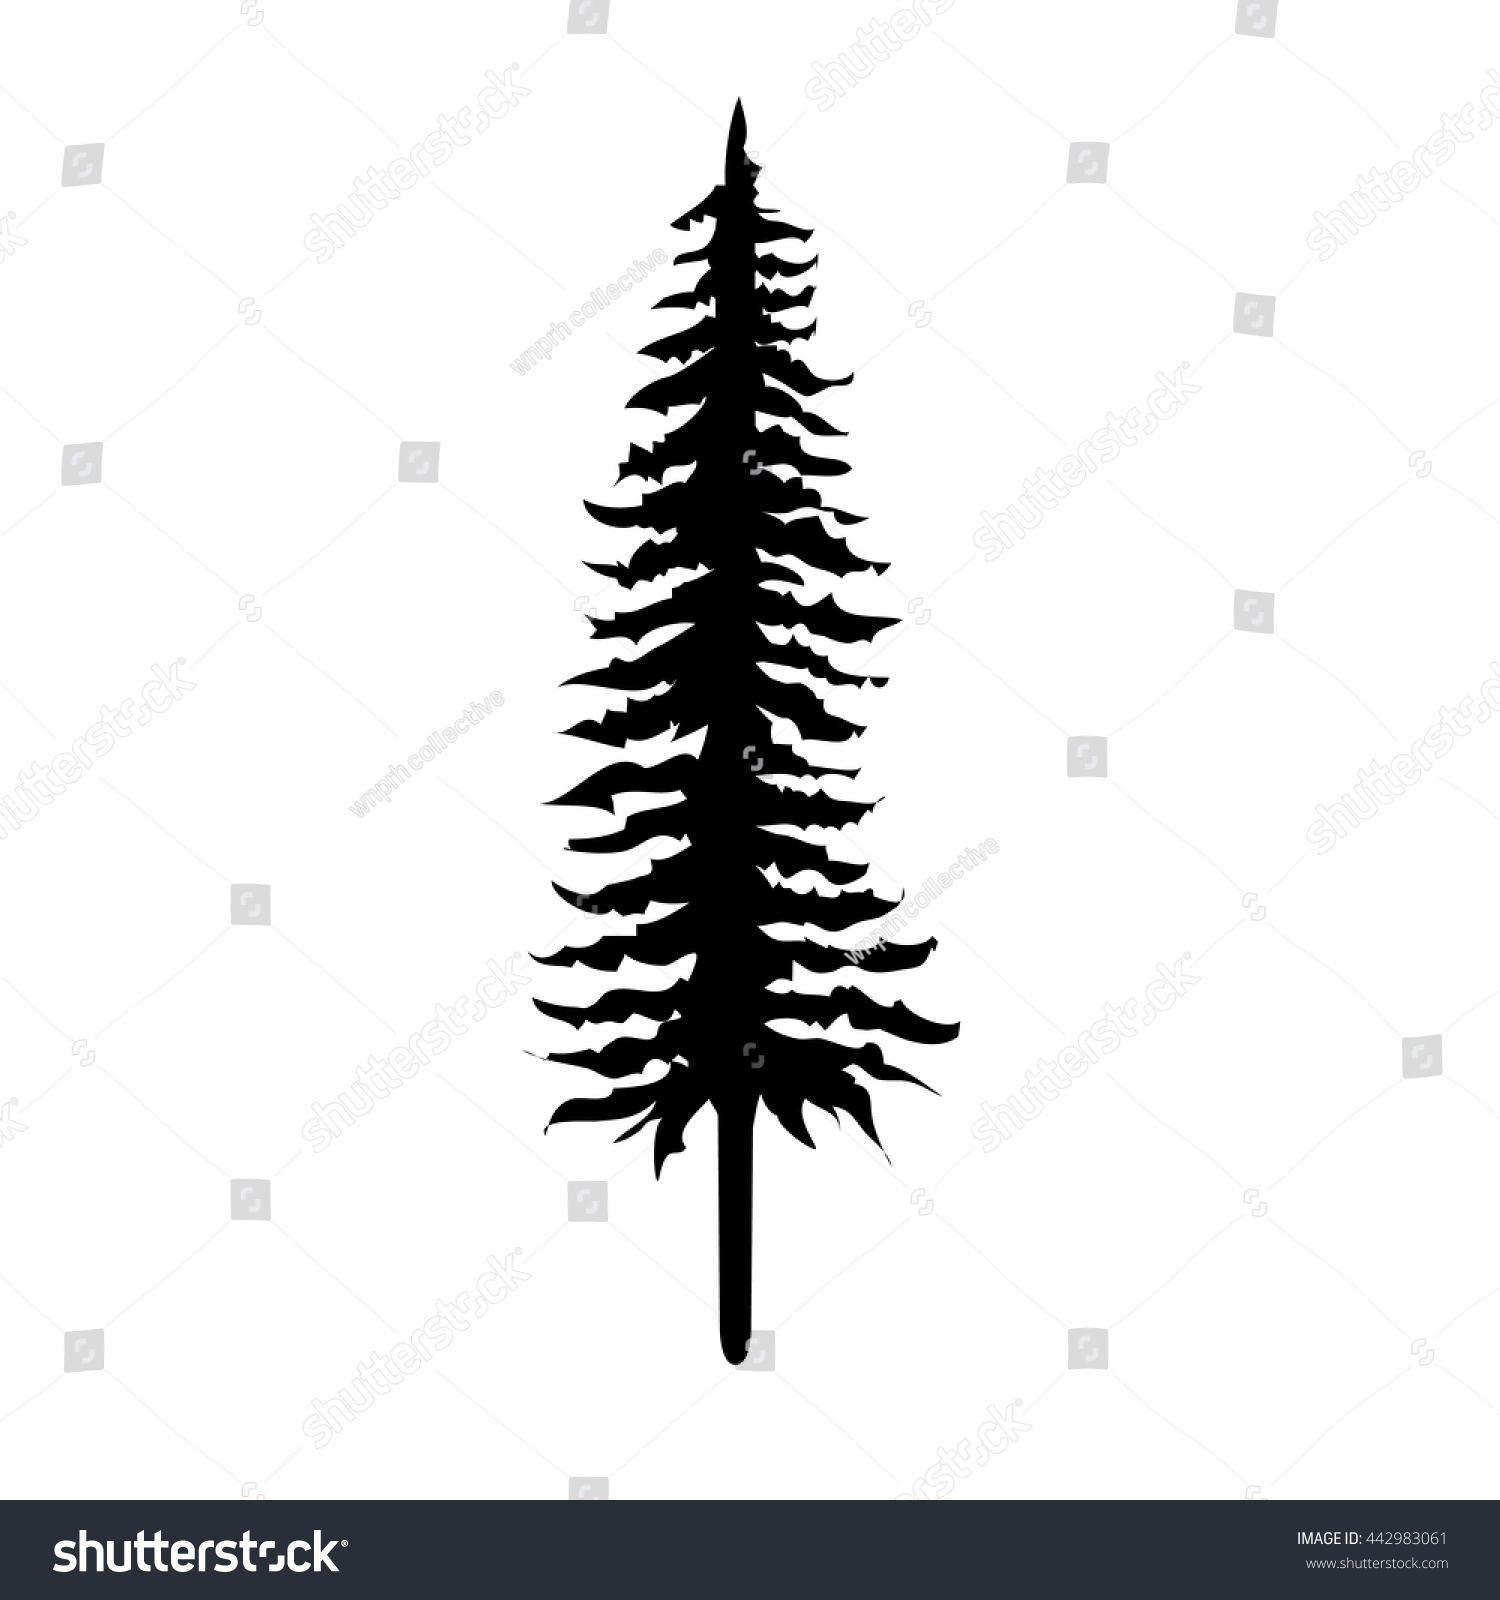 pine tree vector stock vector 442983061 shutterstock rh shutterstock com vector pine tree images vector pine tree shape